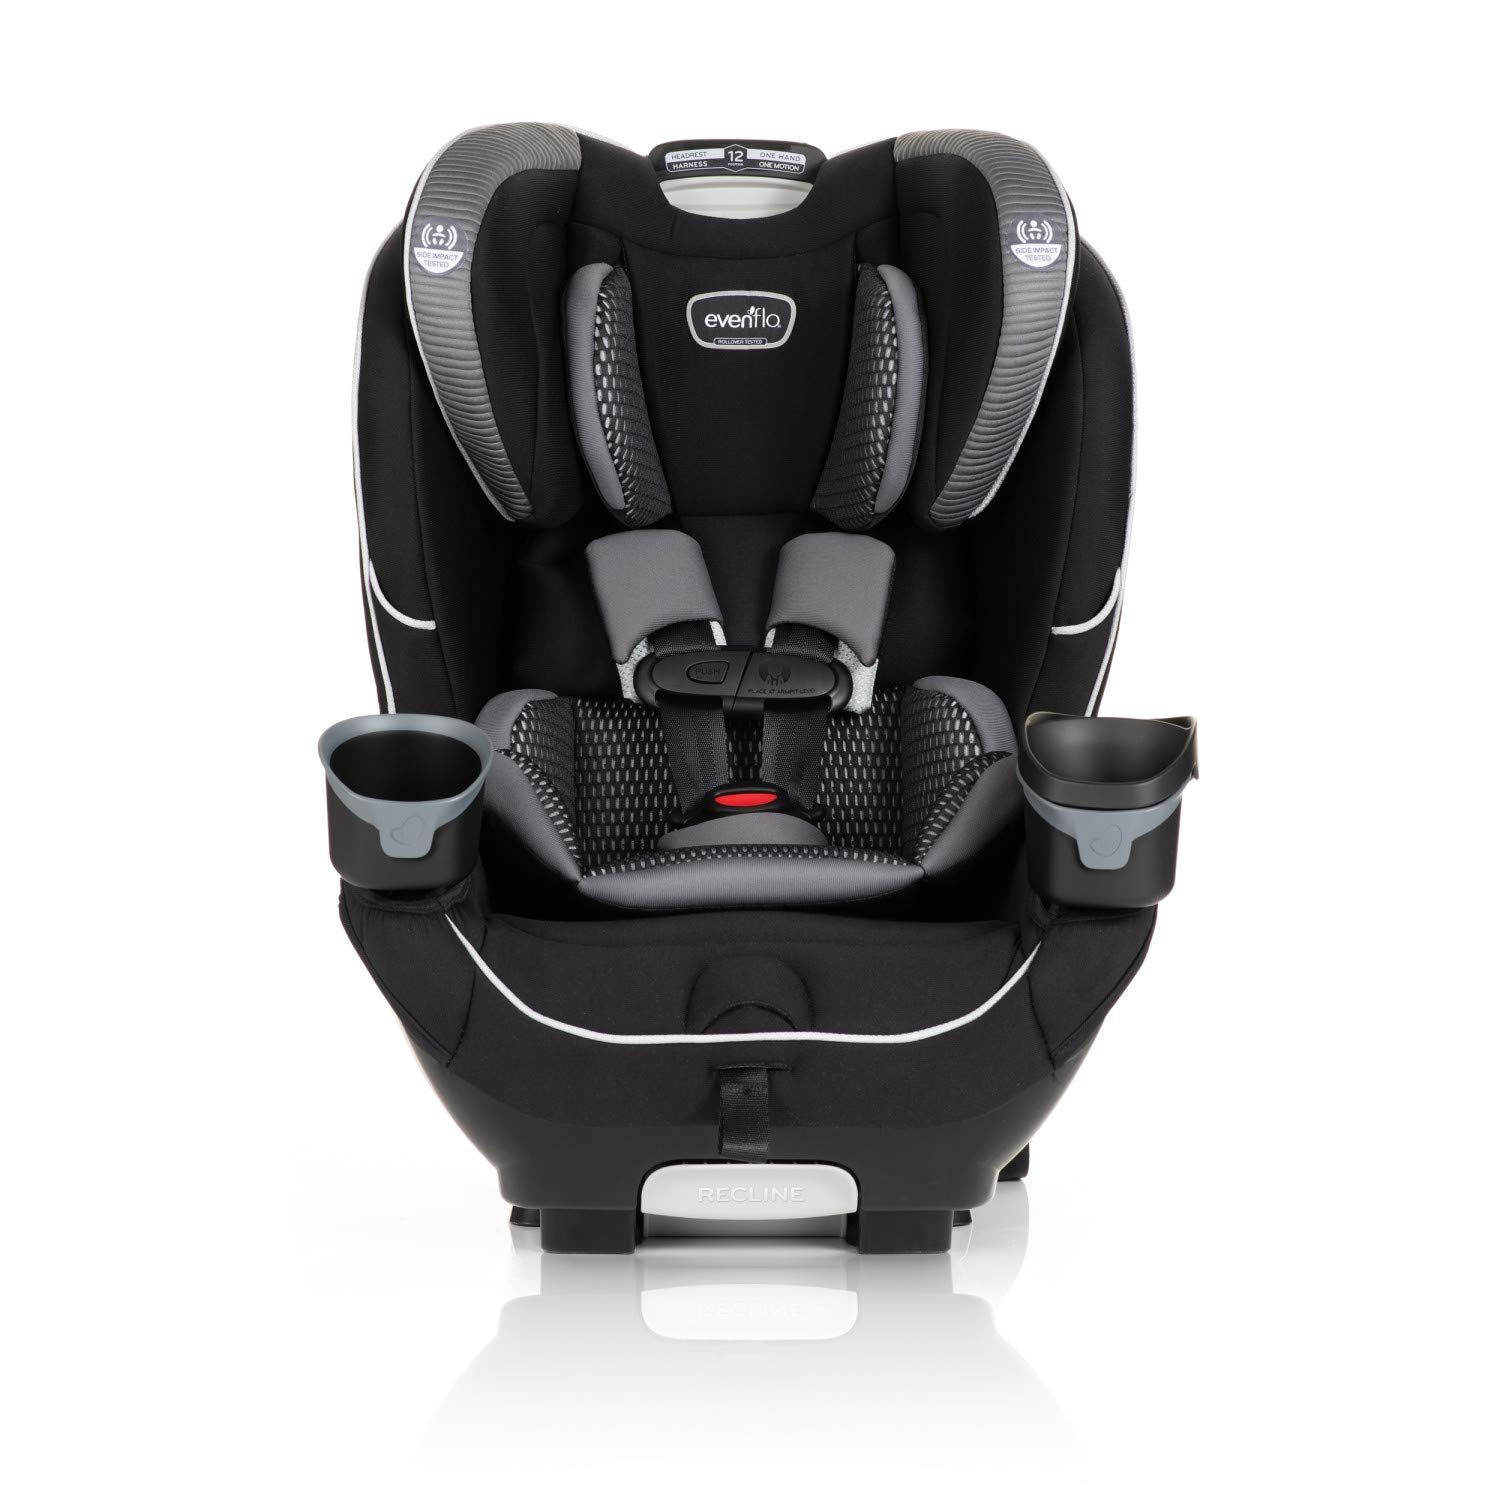 Evenflo EveryFit 4 In 1 Convertible Car Seat in 2020